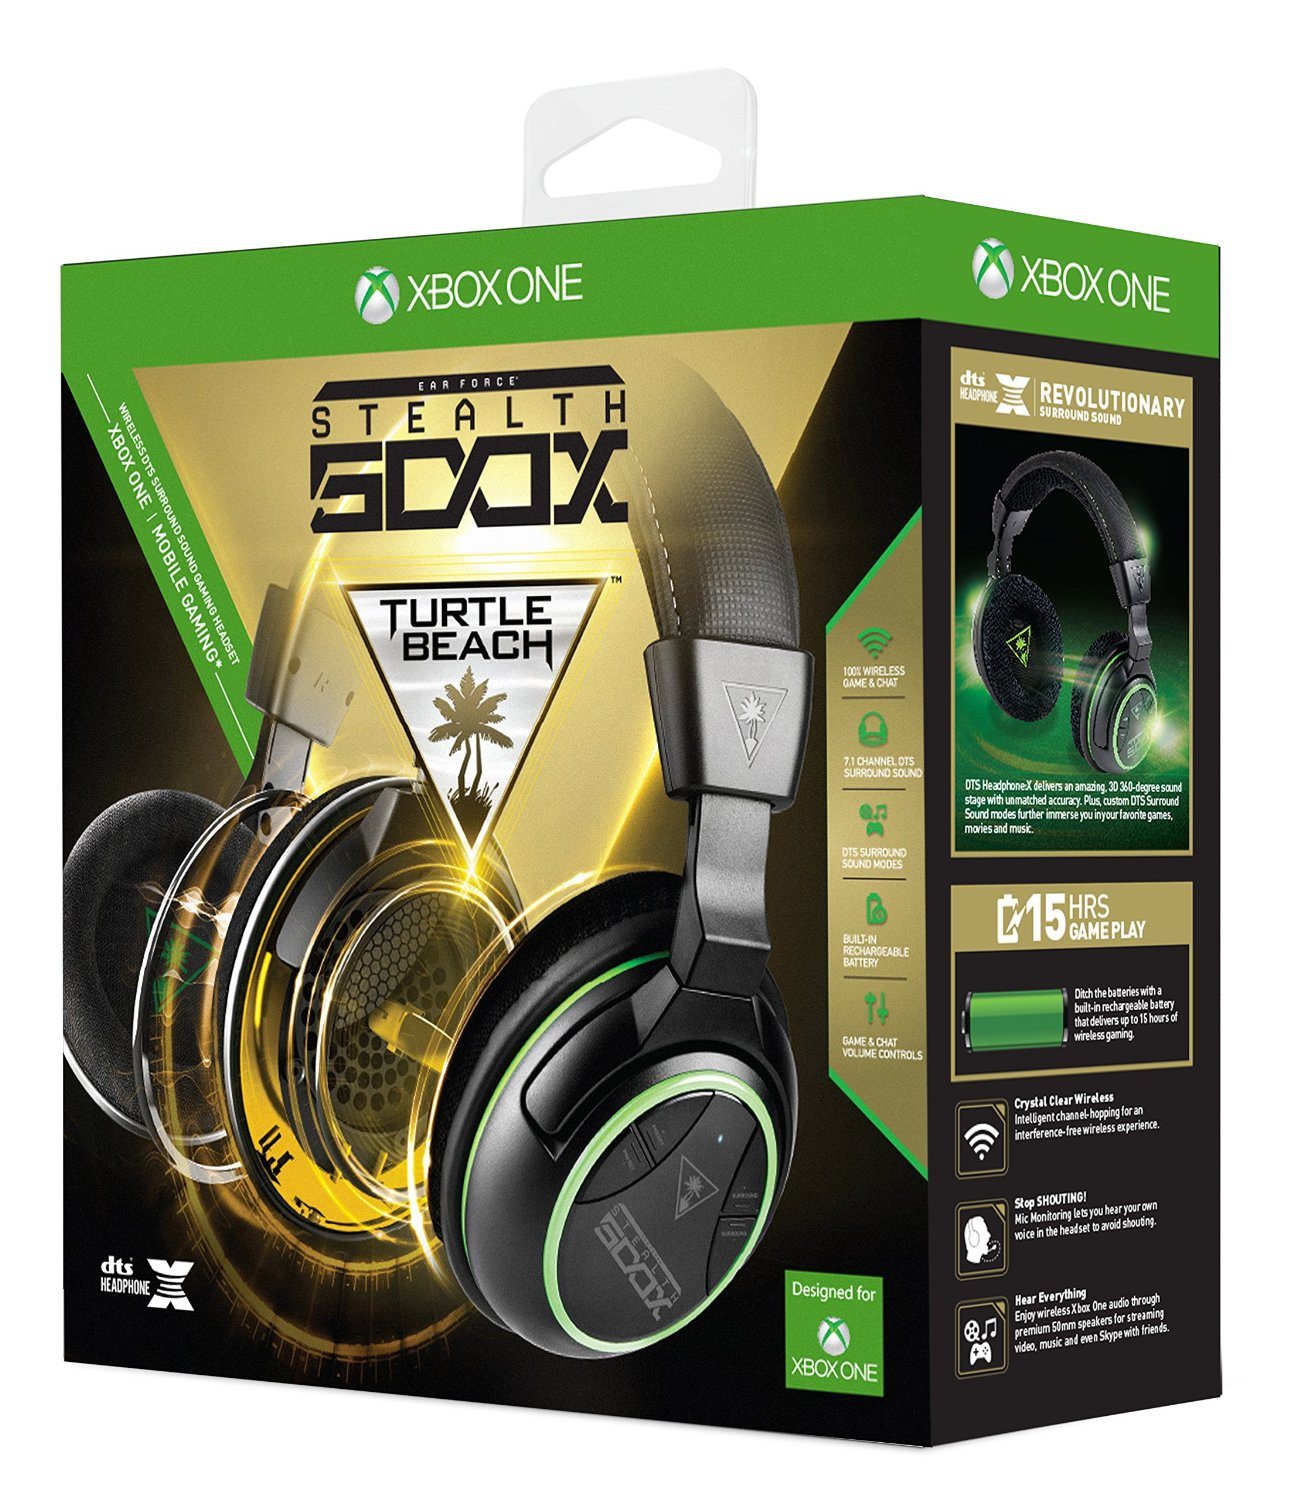 Turtle Beach Stealth 500X Fully Wireless Gaming Headset for the Xbox